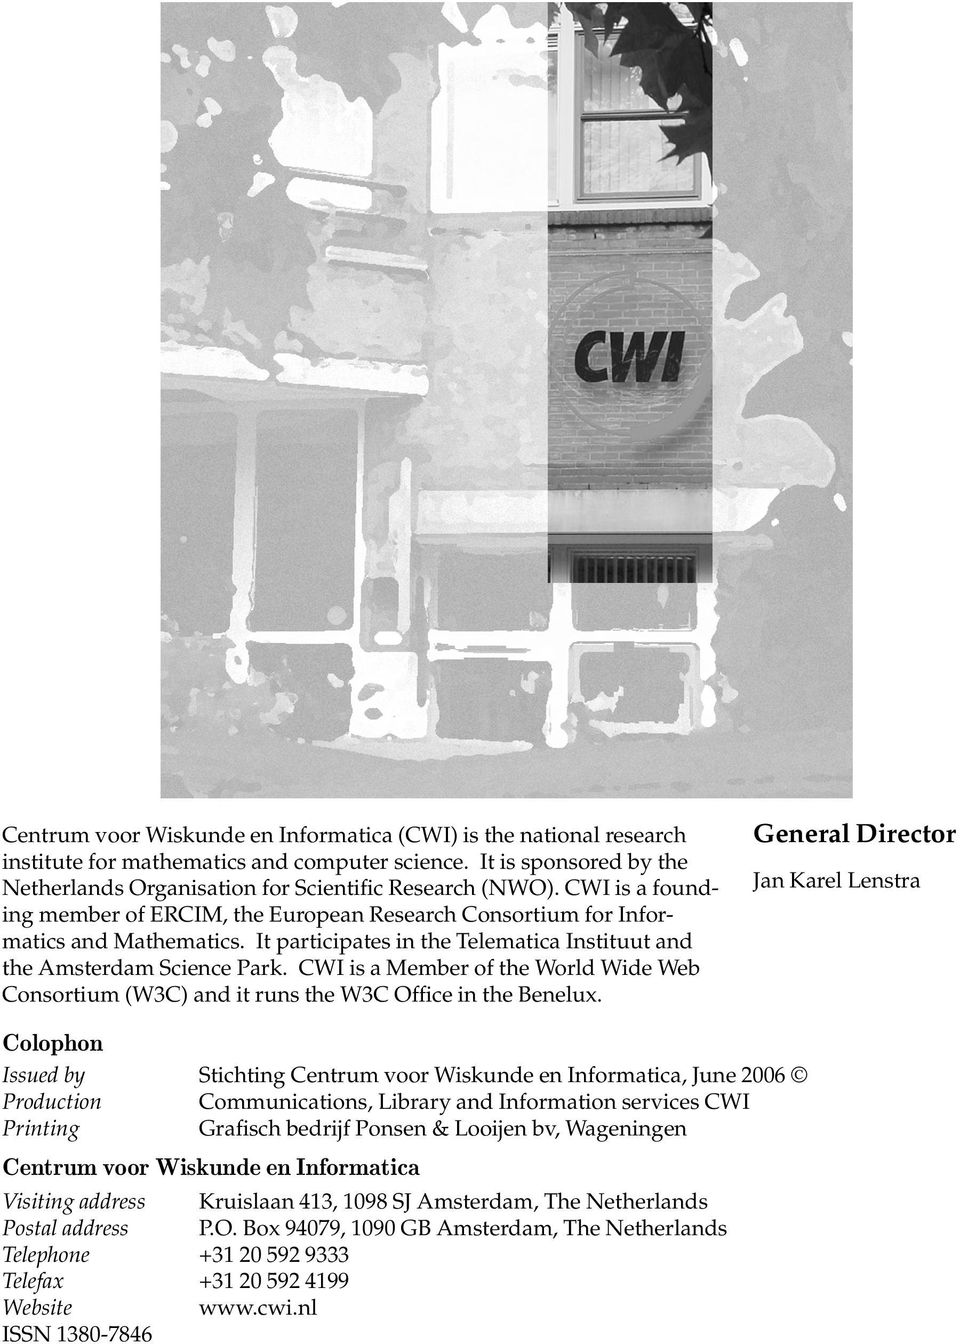 CWI is a Member of the World Wide Web Consortium (W3C) and it runs the W3C Office in the Benelux.